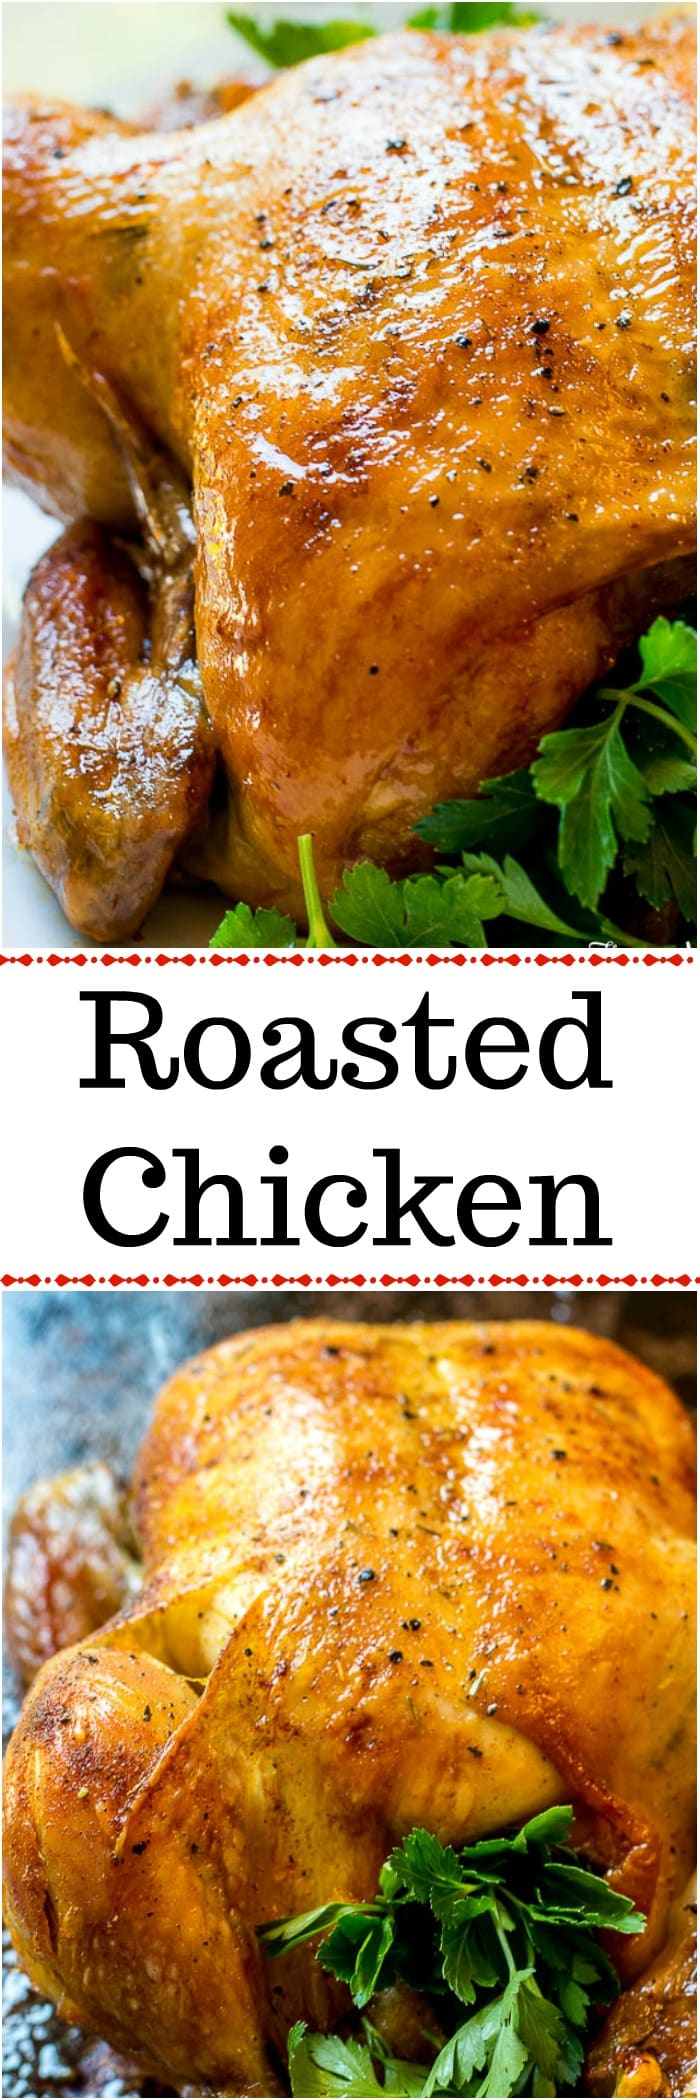 Oven Roasted Chicken - Rotisserie Chicken